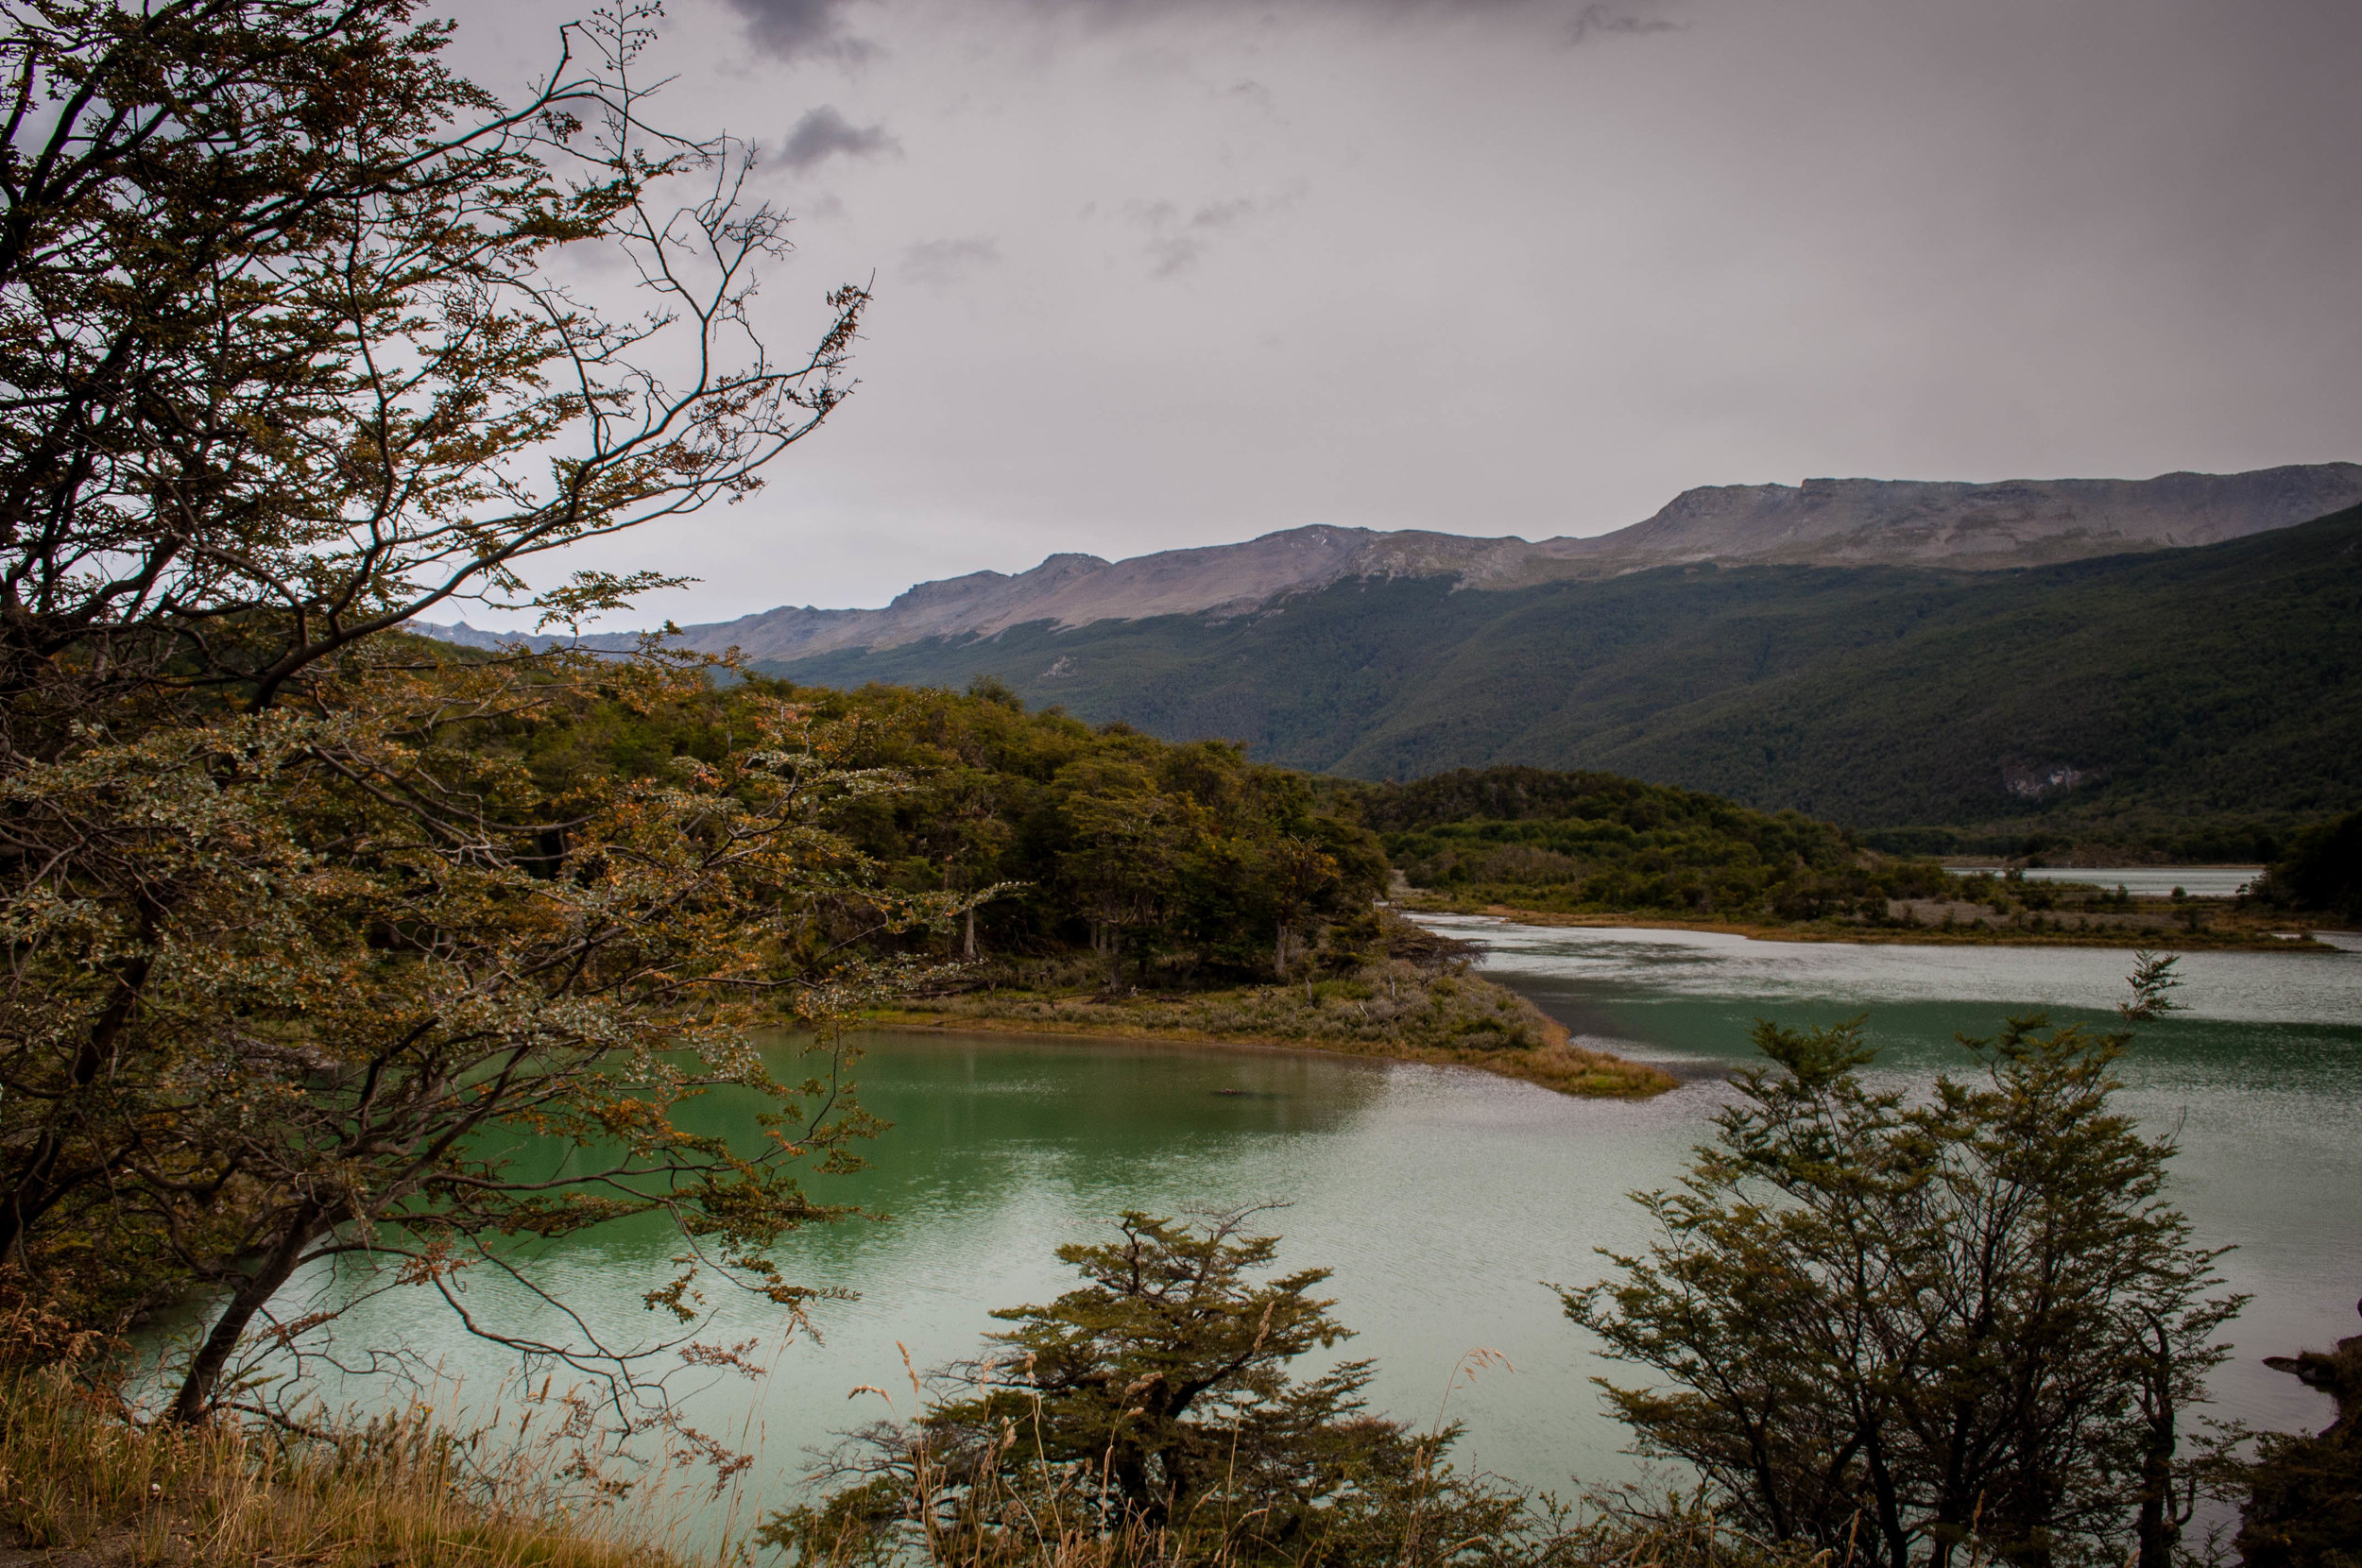 Views from the Parque Nacional Tierra del Fuego. Best things to do in Ushuaia